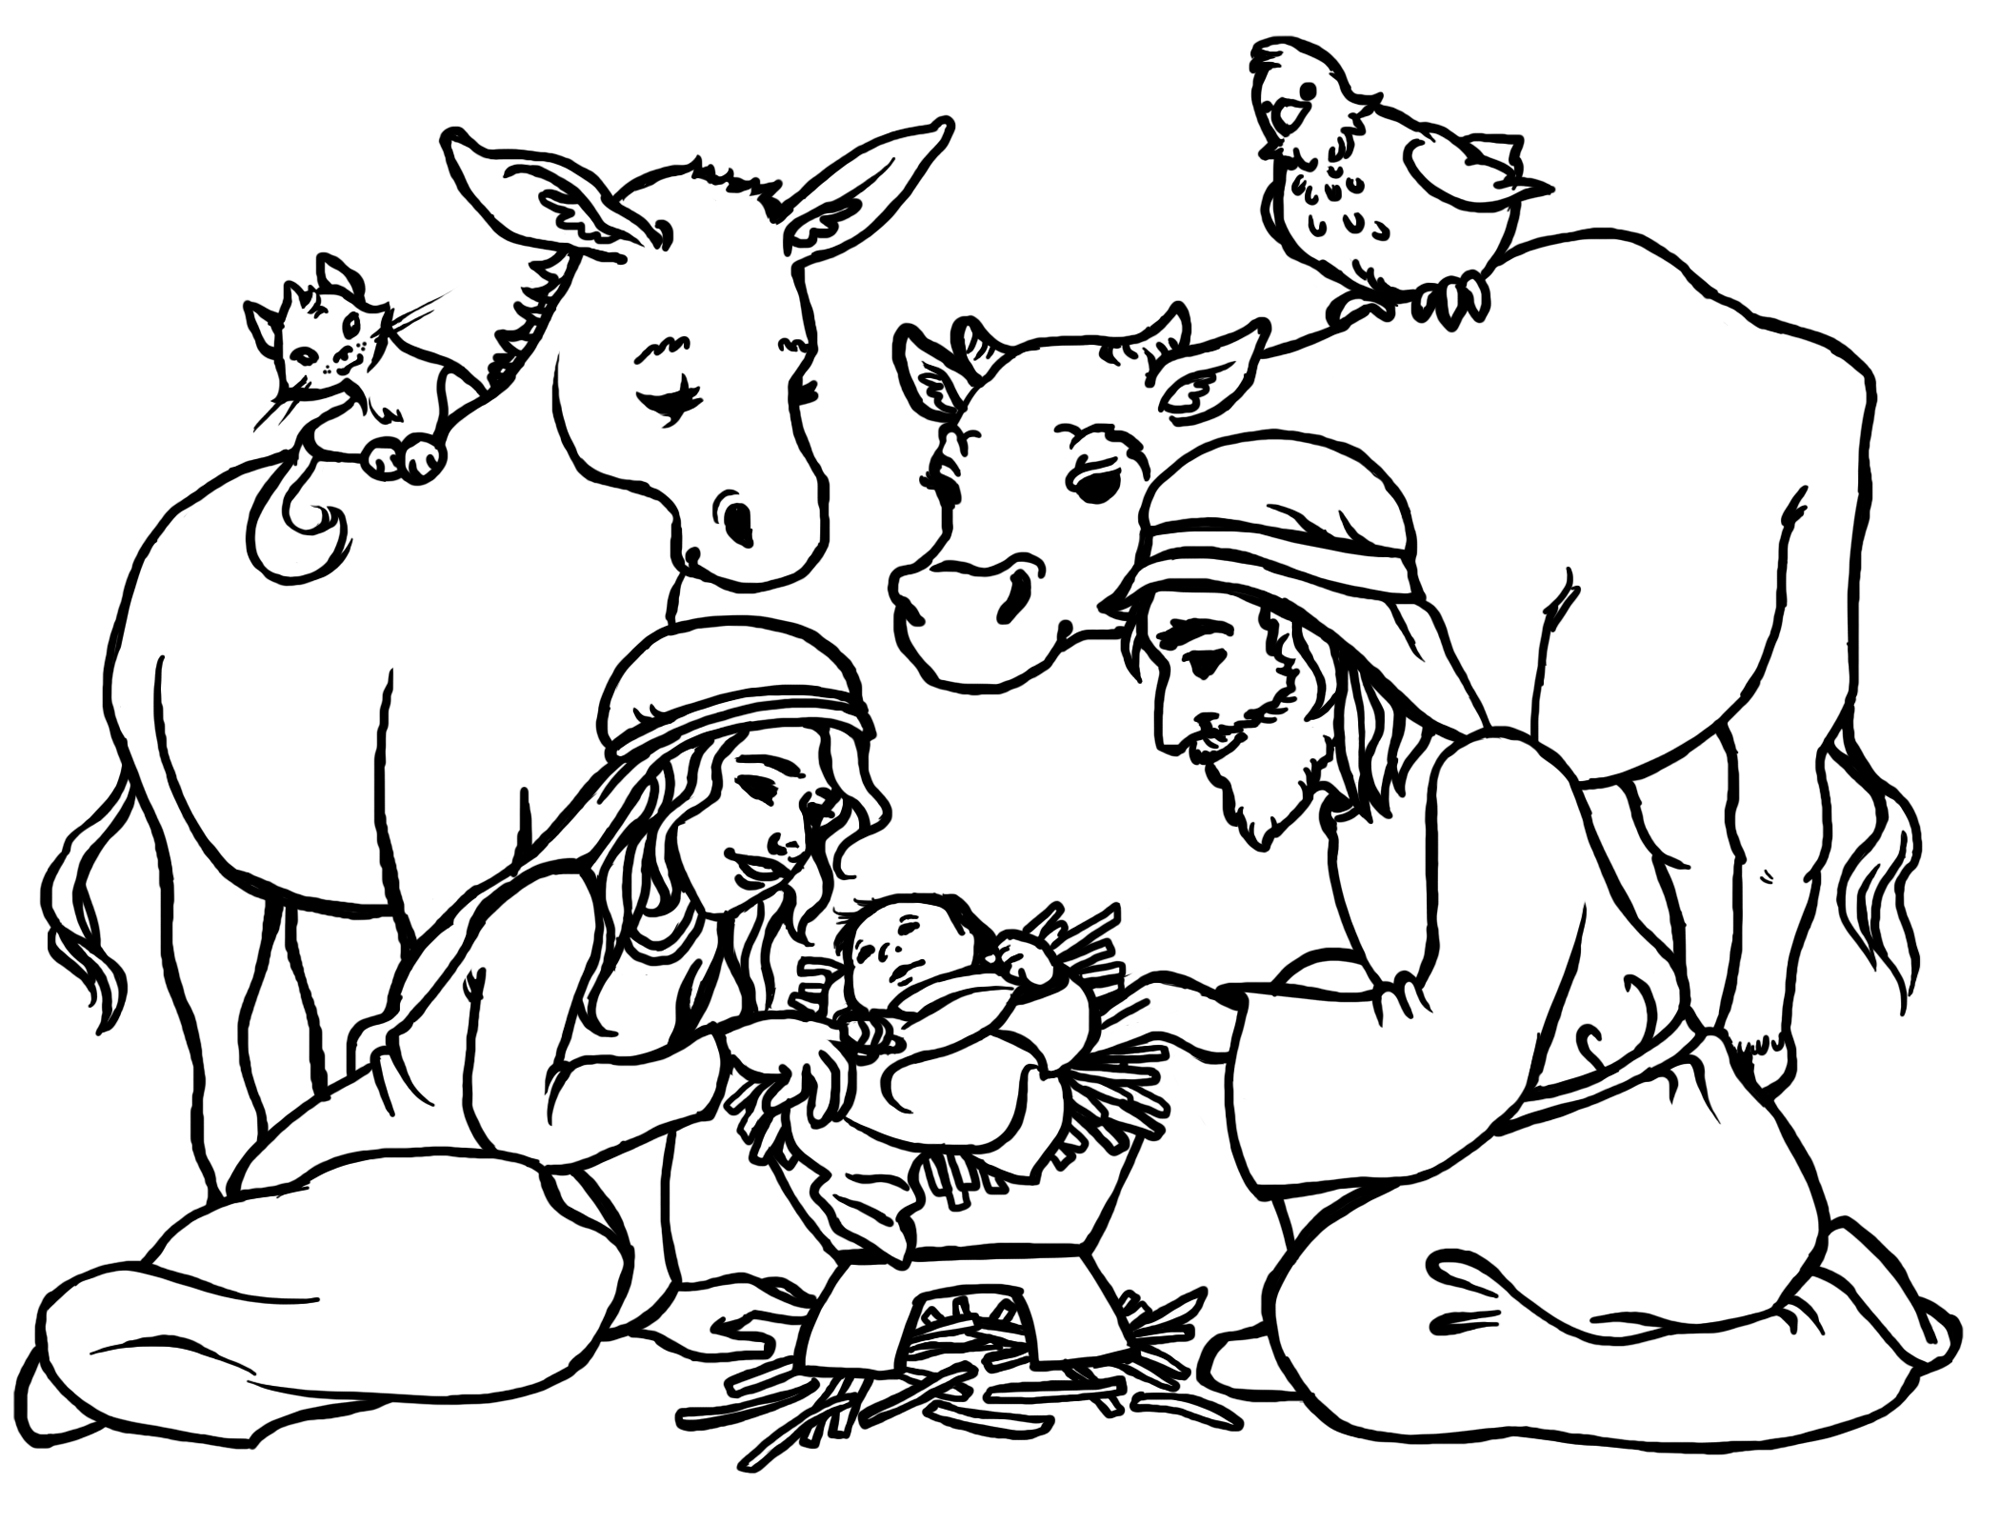 2000x1524 Jesus Coloring Pages Others Coloringpedia Christmas Nativity